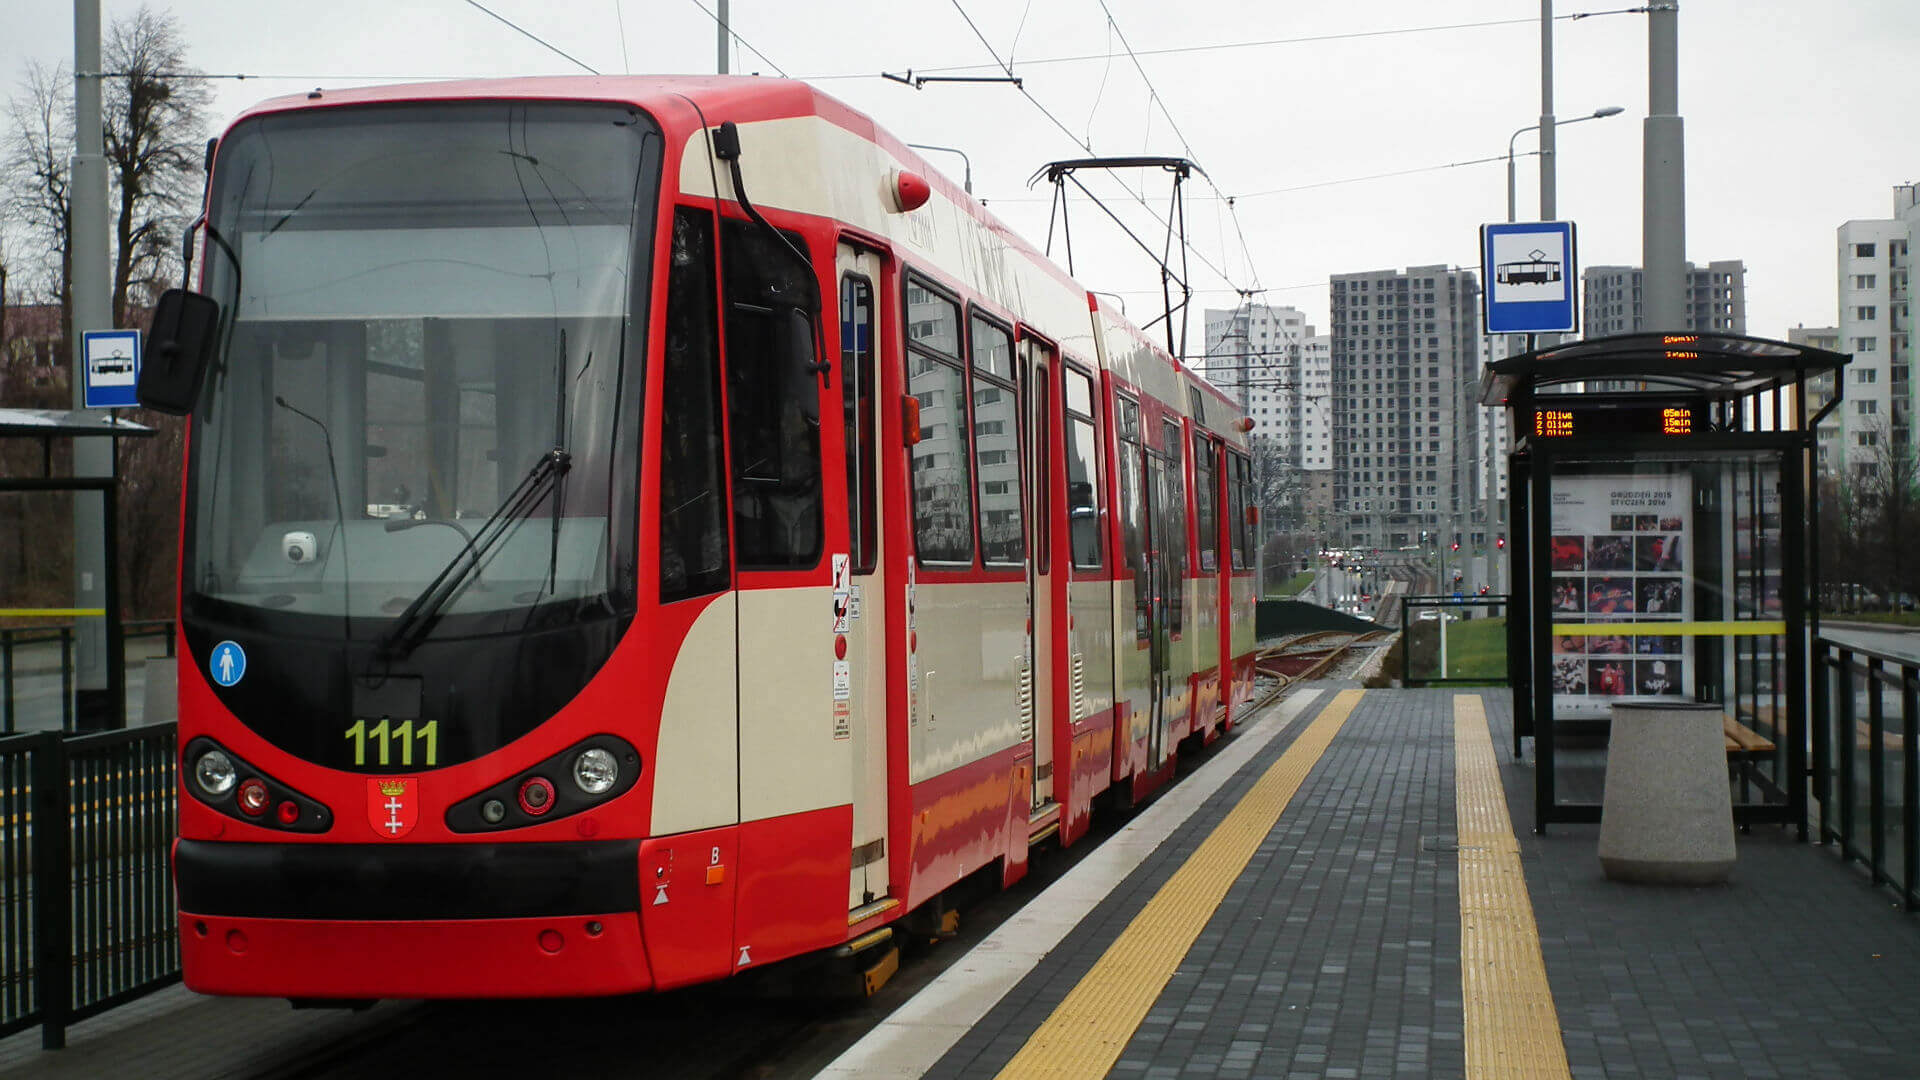 Taking the Tram - Through The Eyes of a Foreigner Living in Gdańsk